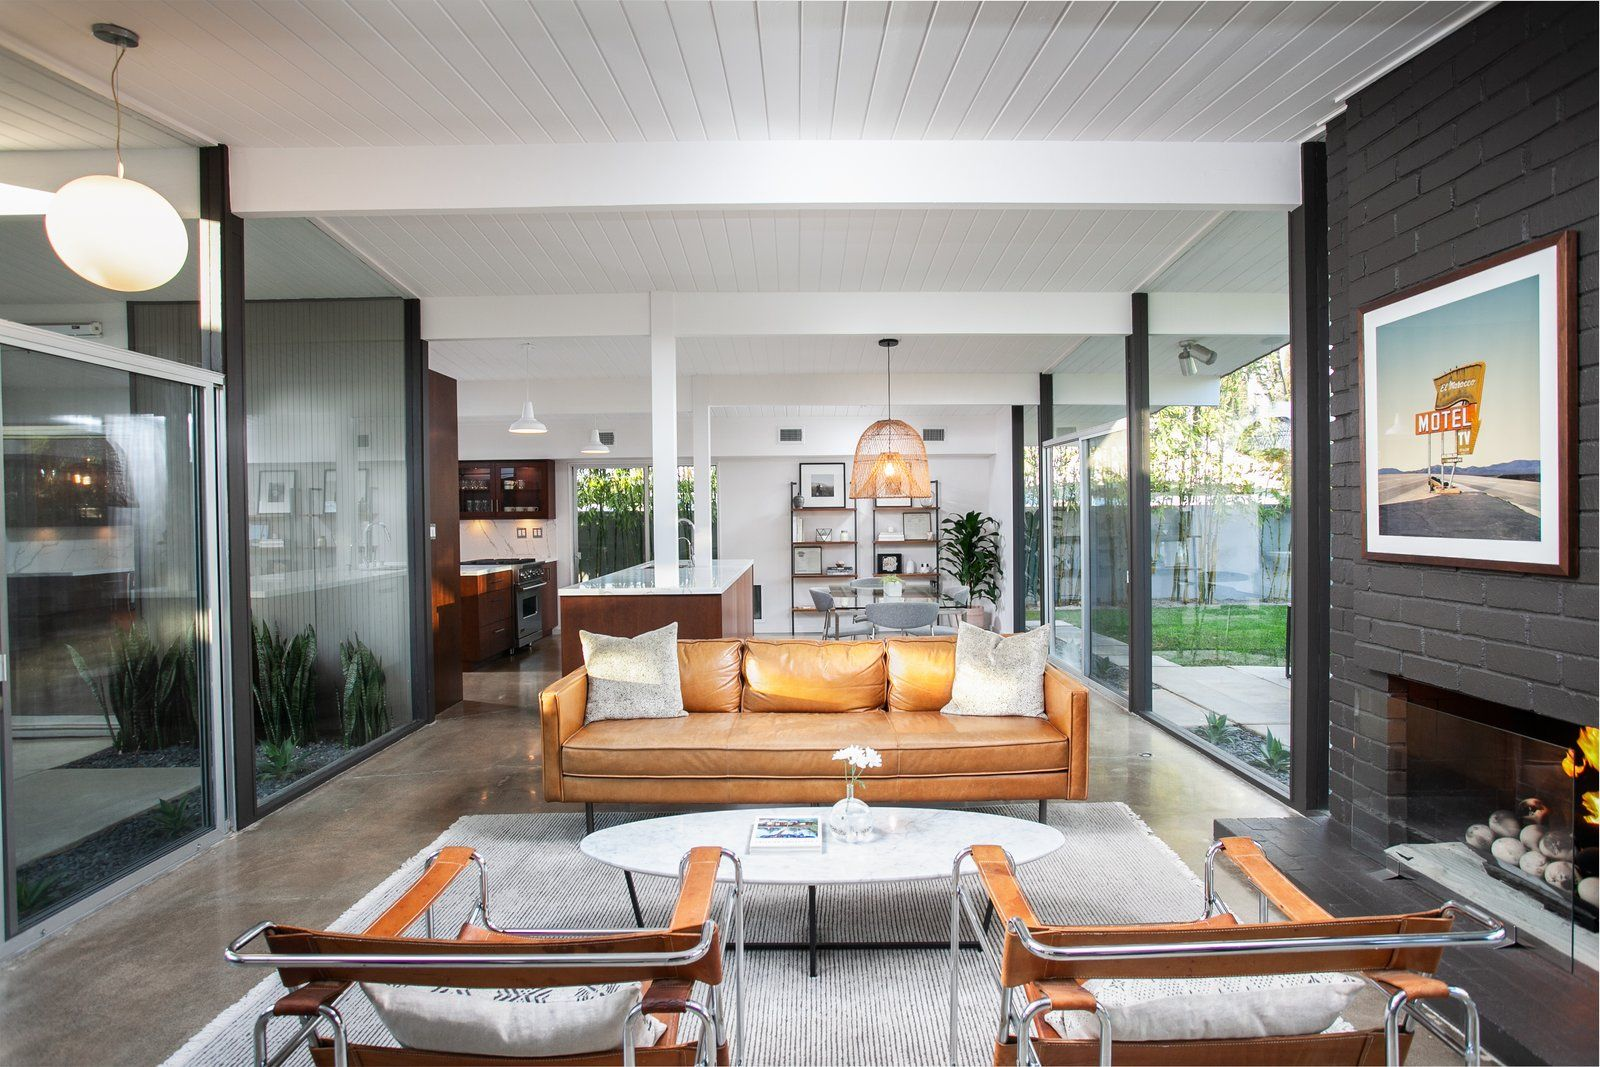 Photo 5 of 19 in A Handsomely Updated Eichler in Southern ...